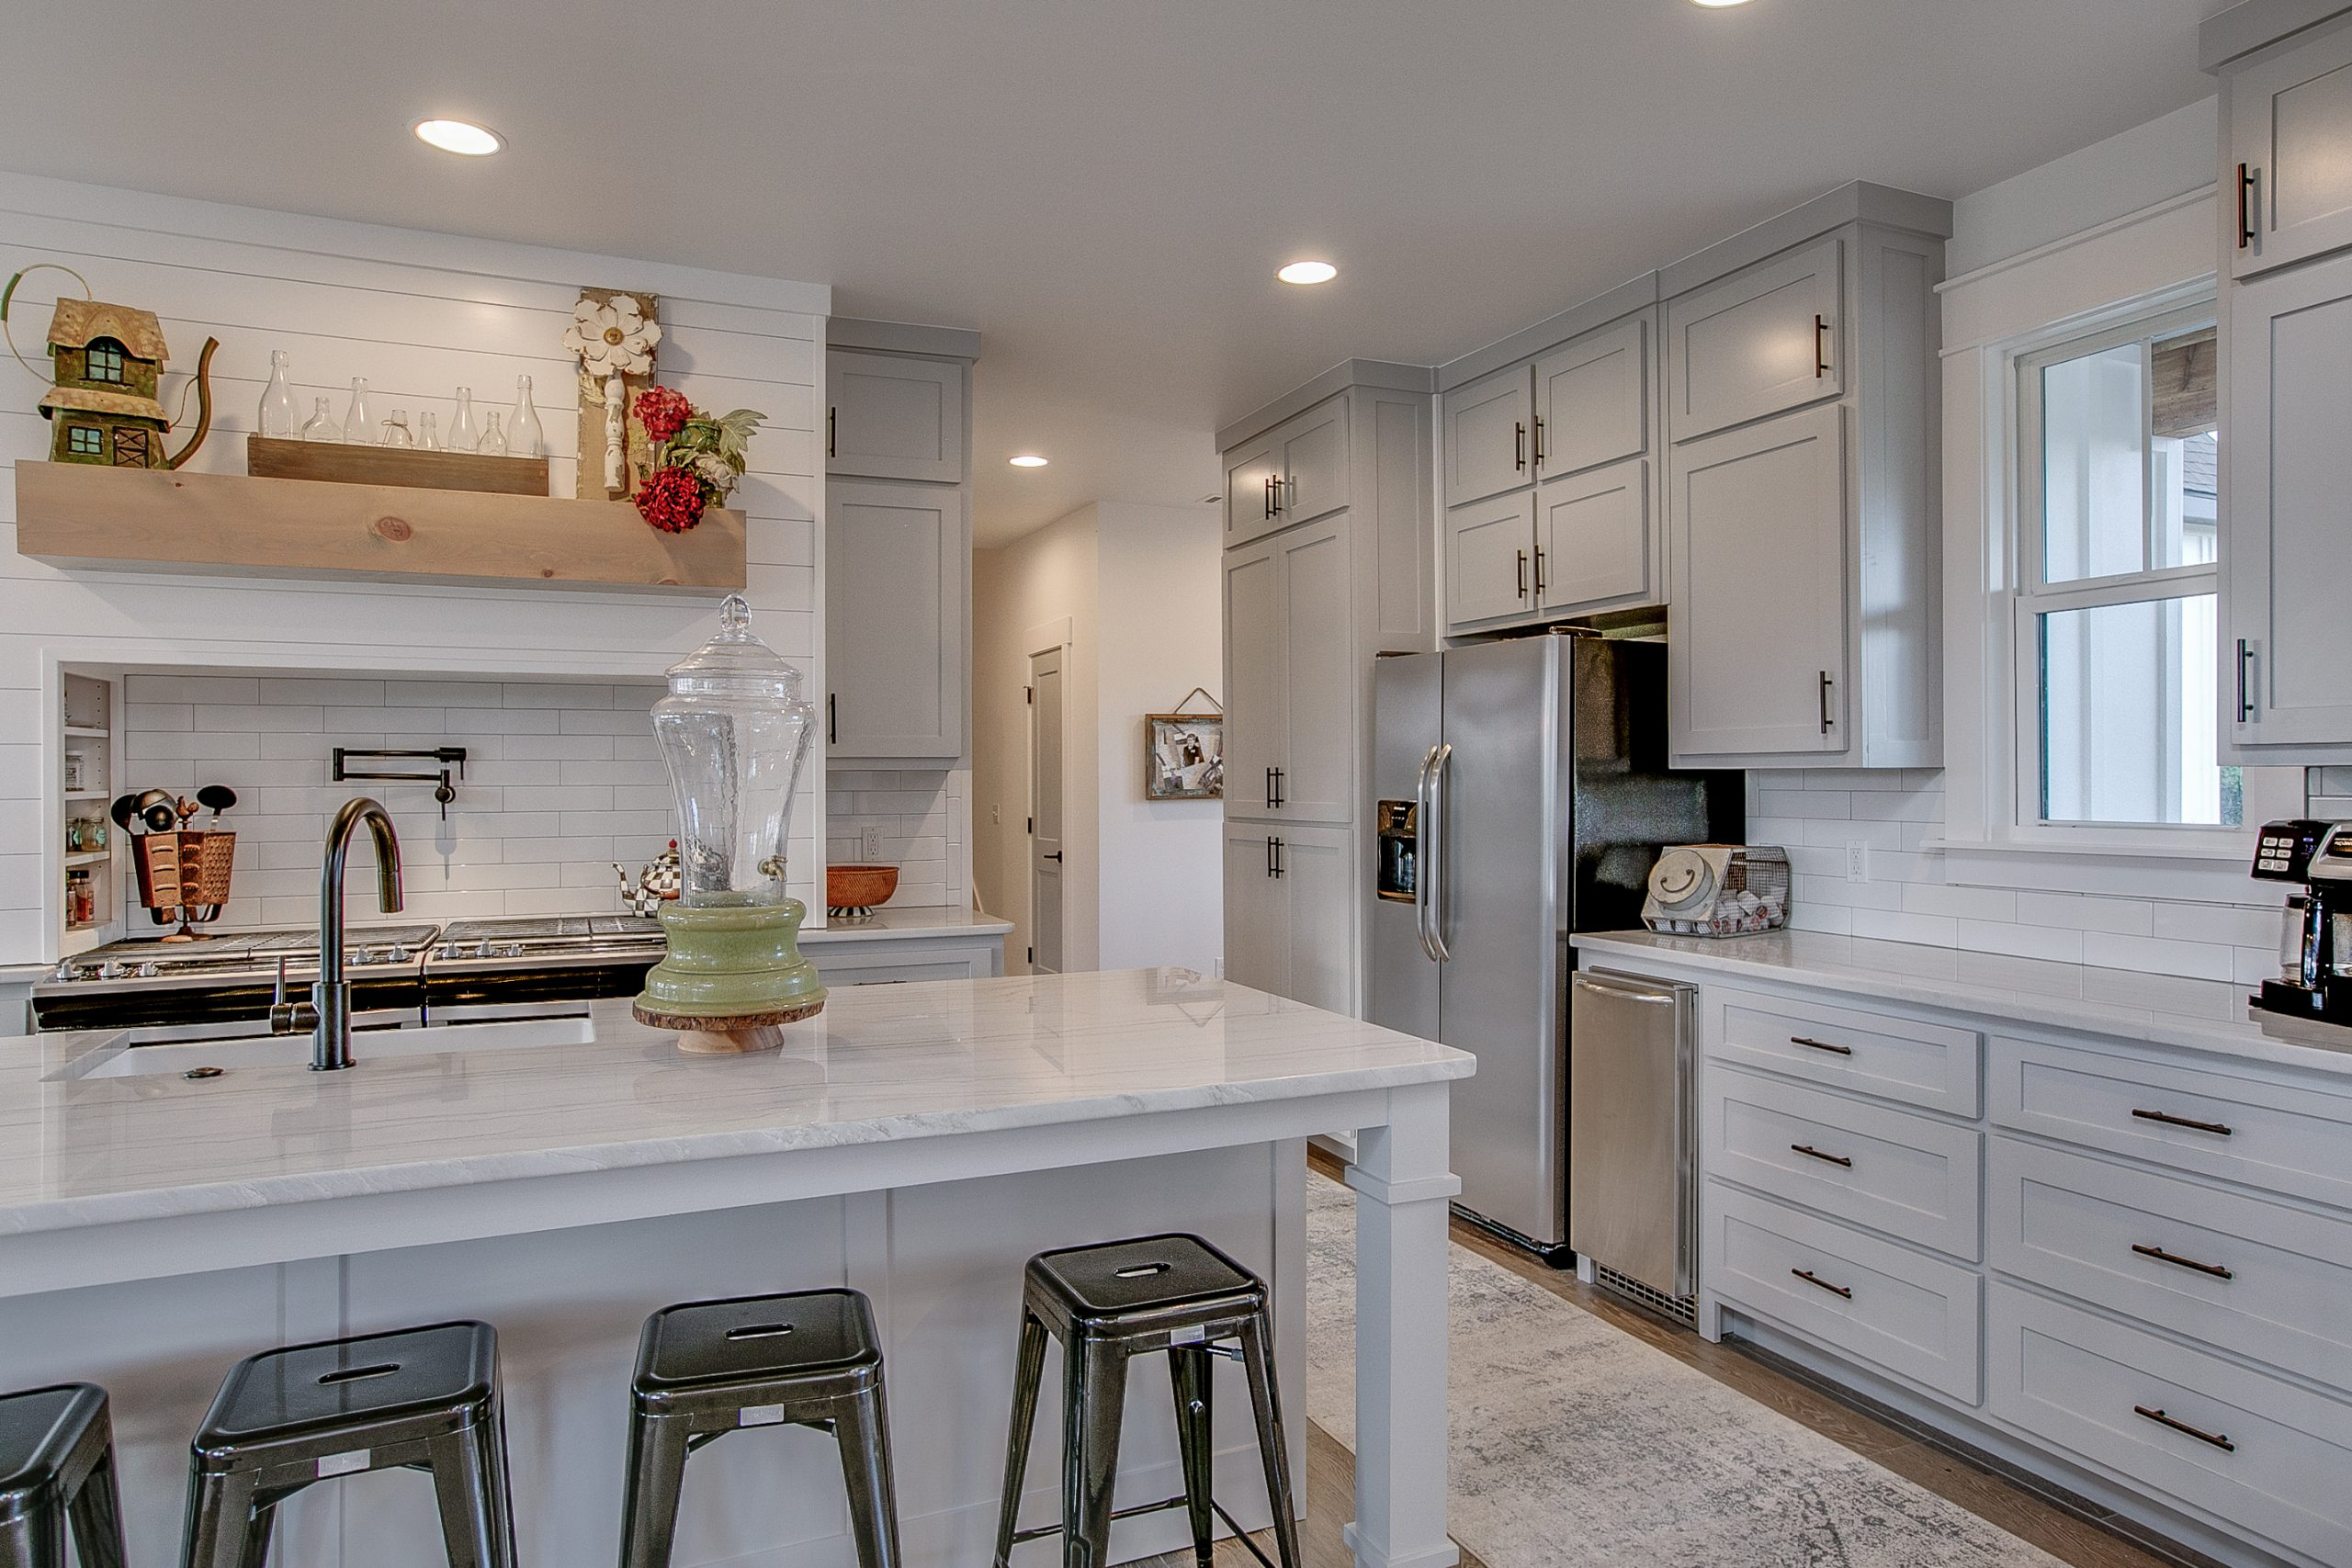 Custom Shaker Cabinets Eatontown NJ, Buy custom kitchen cabinets factory direct in Eatontown NJ, Buy custom shaker cabinets factory direct in Eatontown NJ